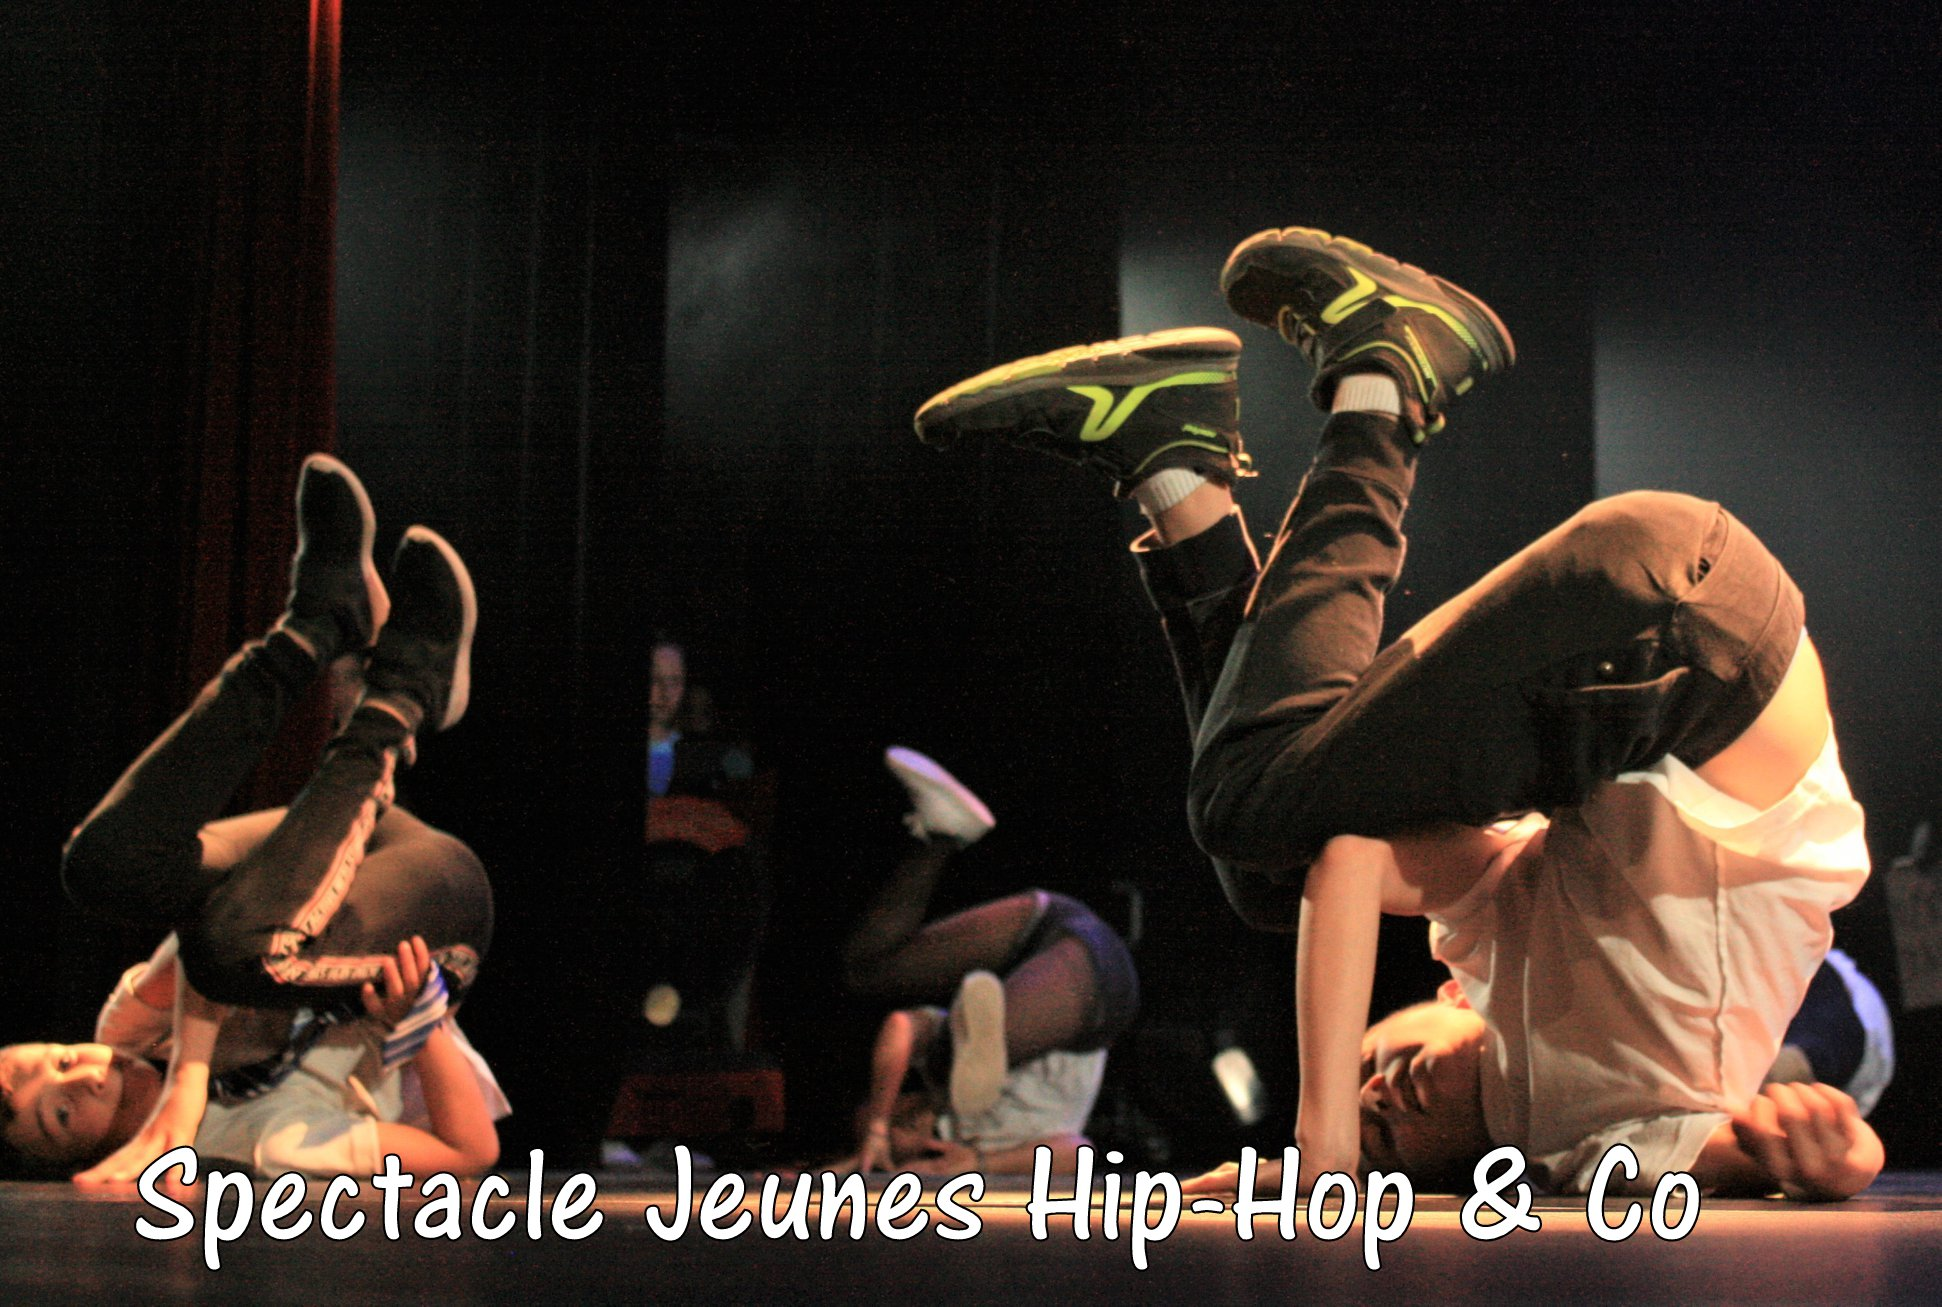 spectacle-jeunes-hip-hop-co3